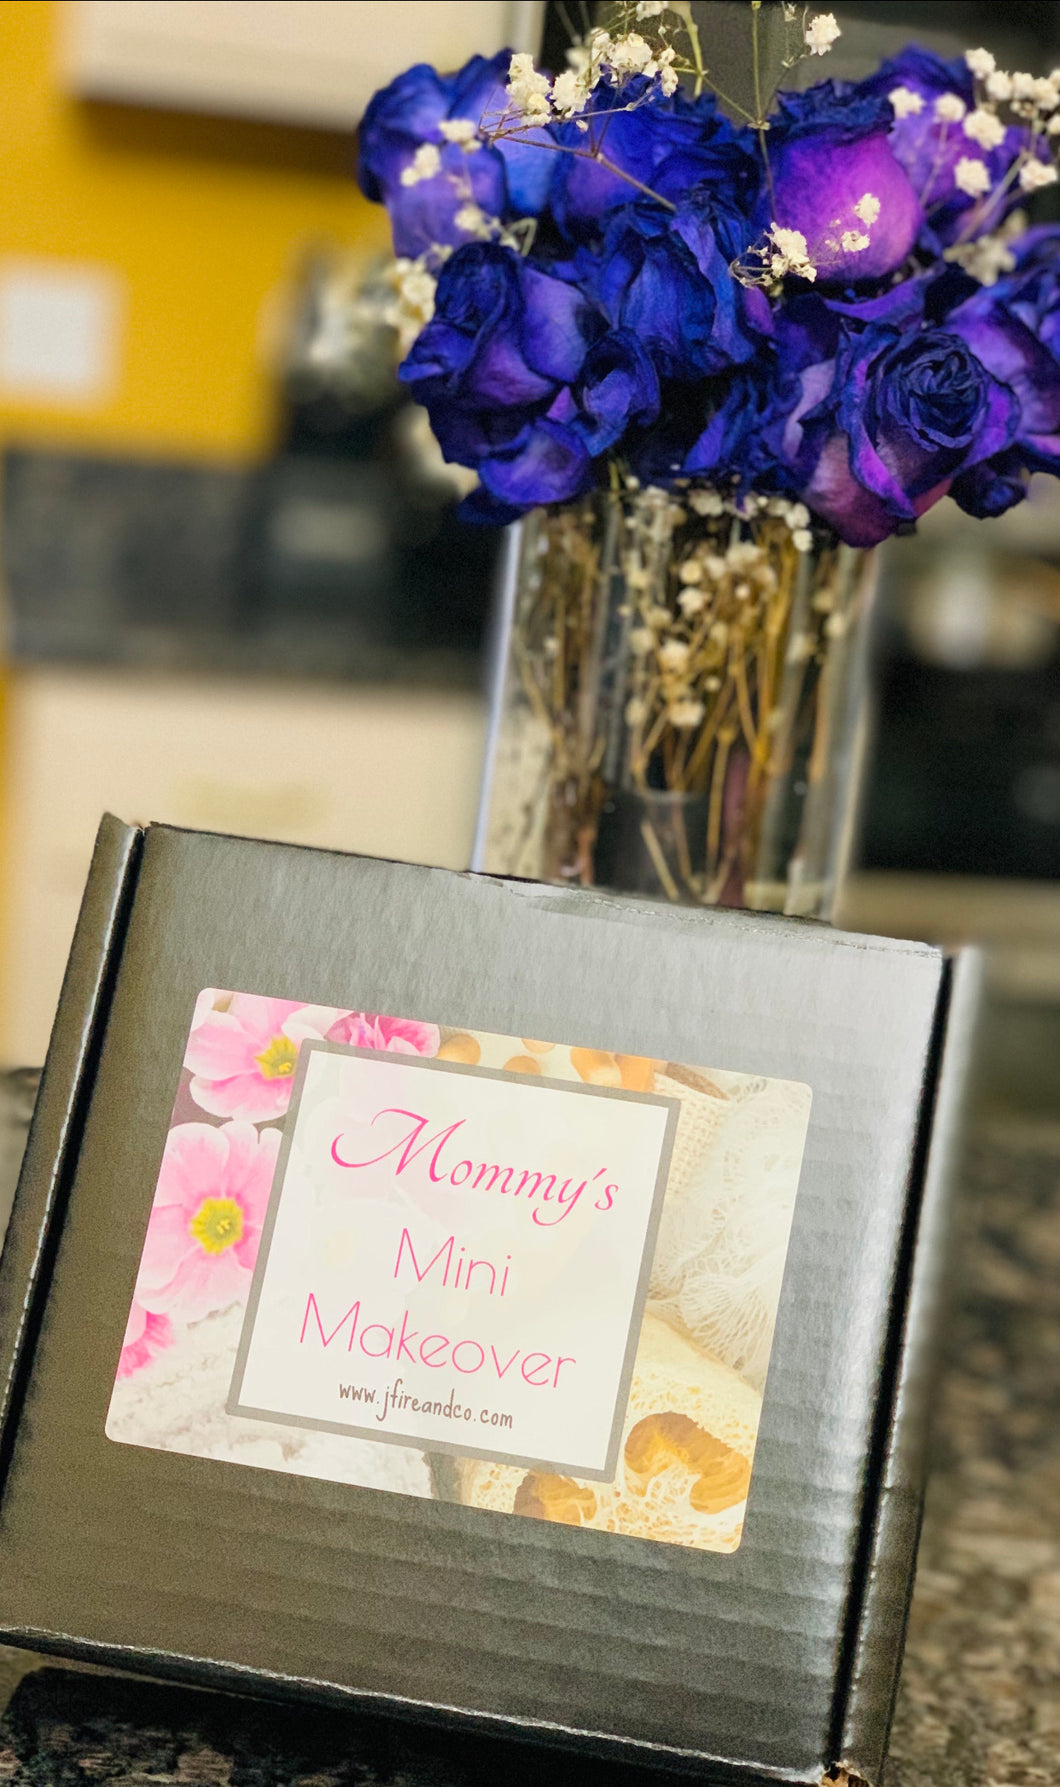 Mommy's Mini Makeover (MOTHER'S DAY ORDERS ARE NO LONGER BEING TAKEN)